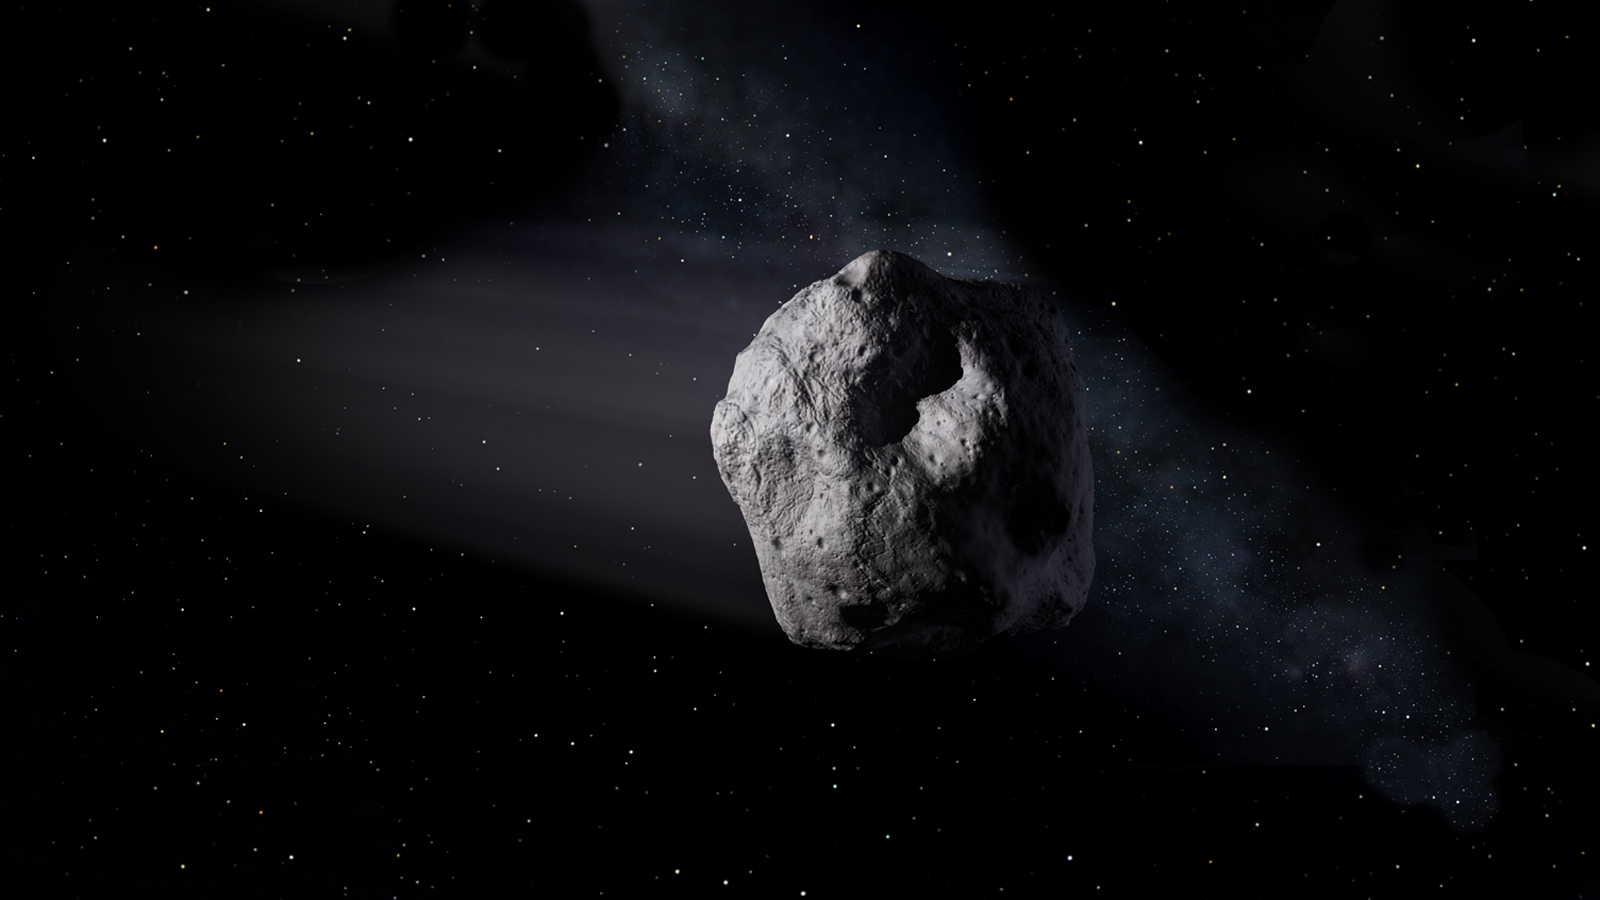 NASA Says 37-Meter Long Asteroid Will Make 'Near-Earth Approach' Today